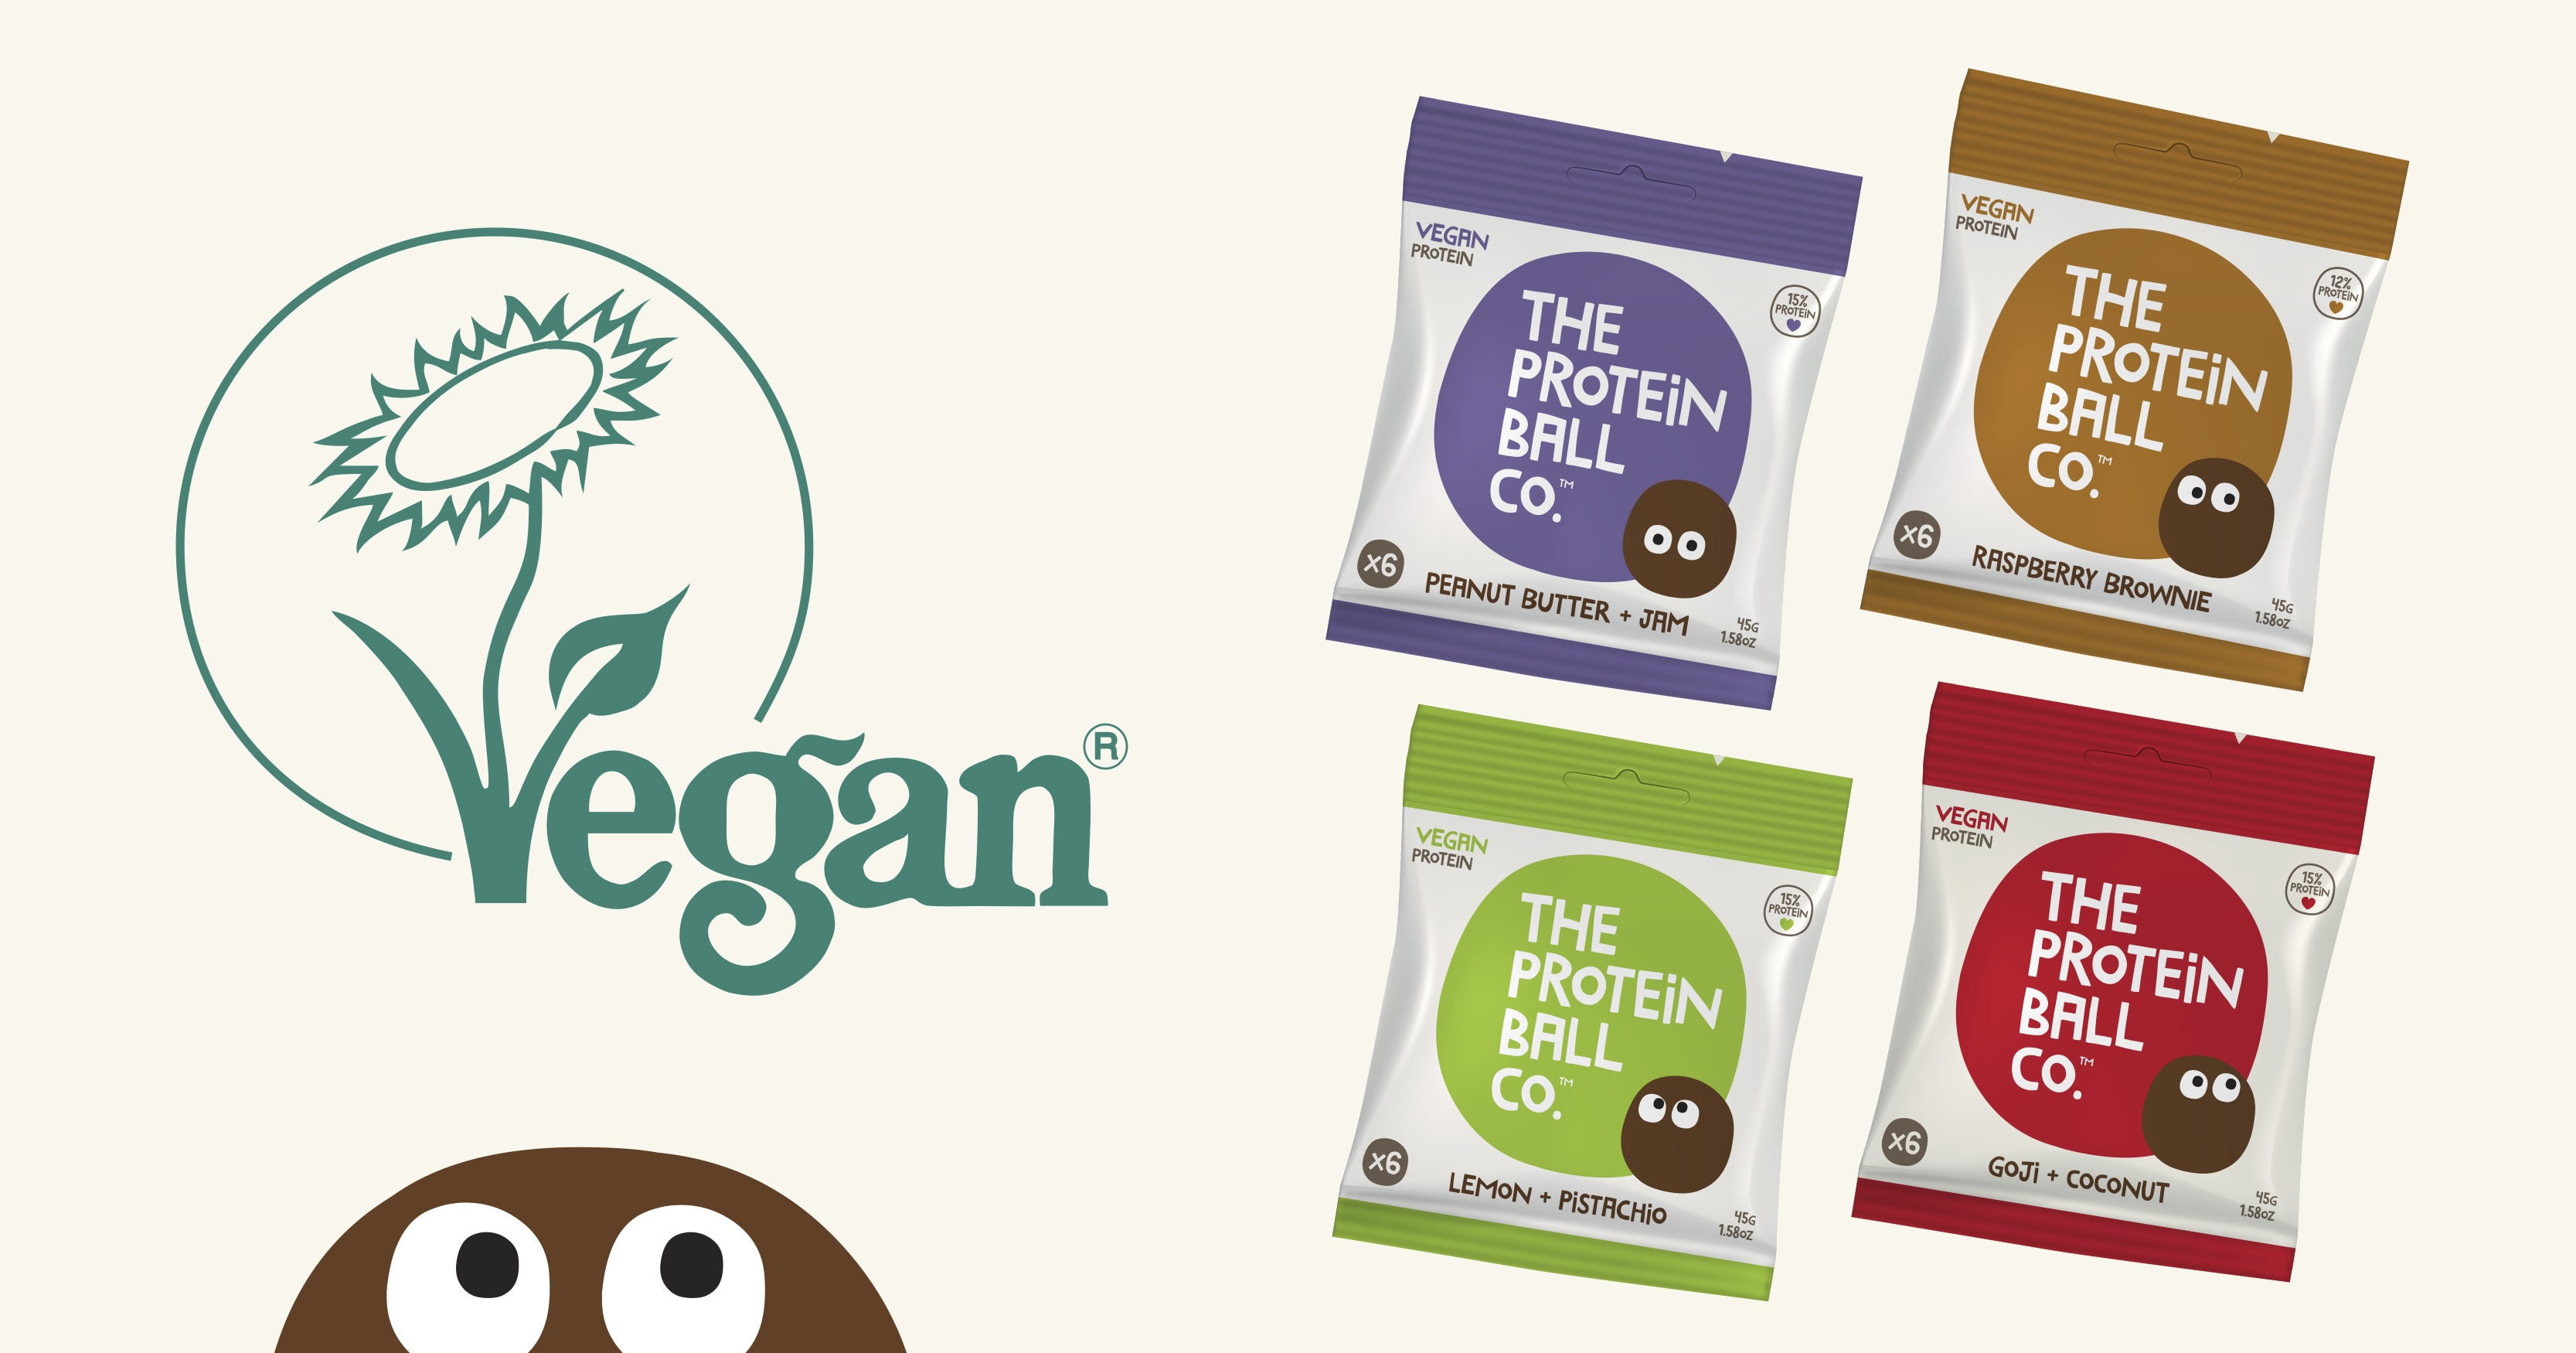 Vegan Society Trademark + The Protein Ball Co